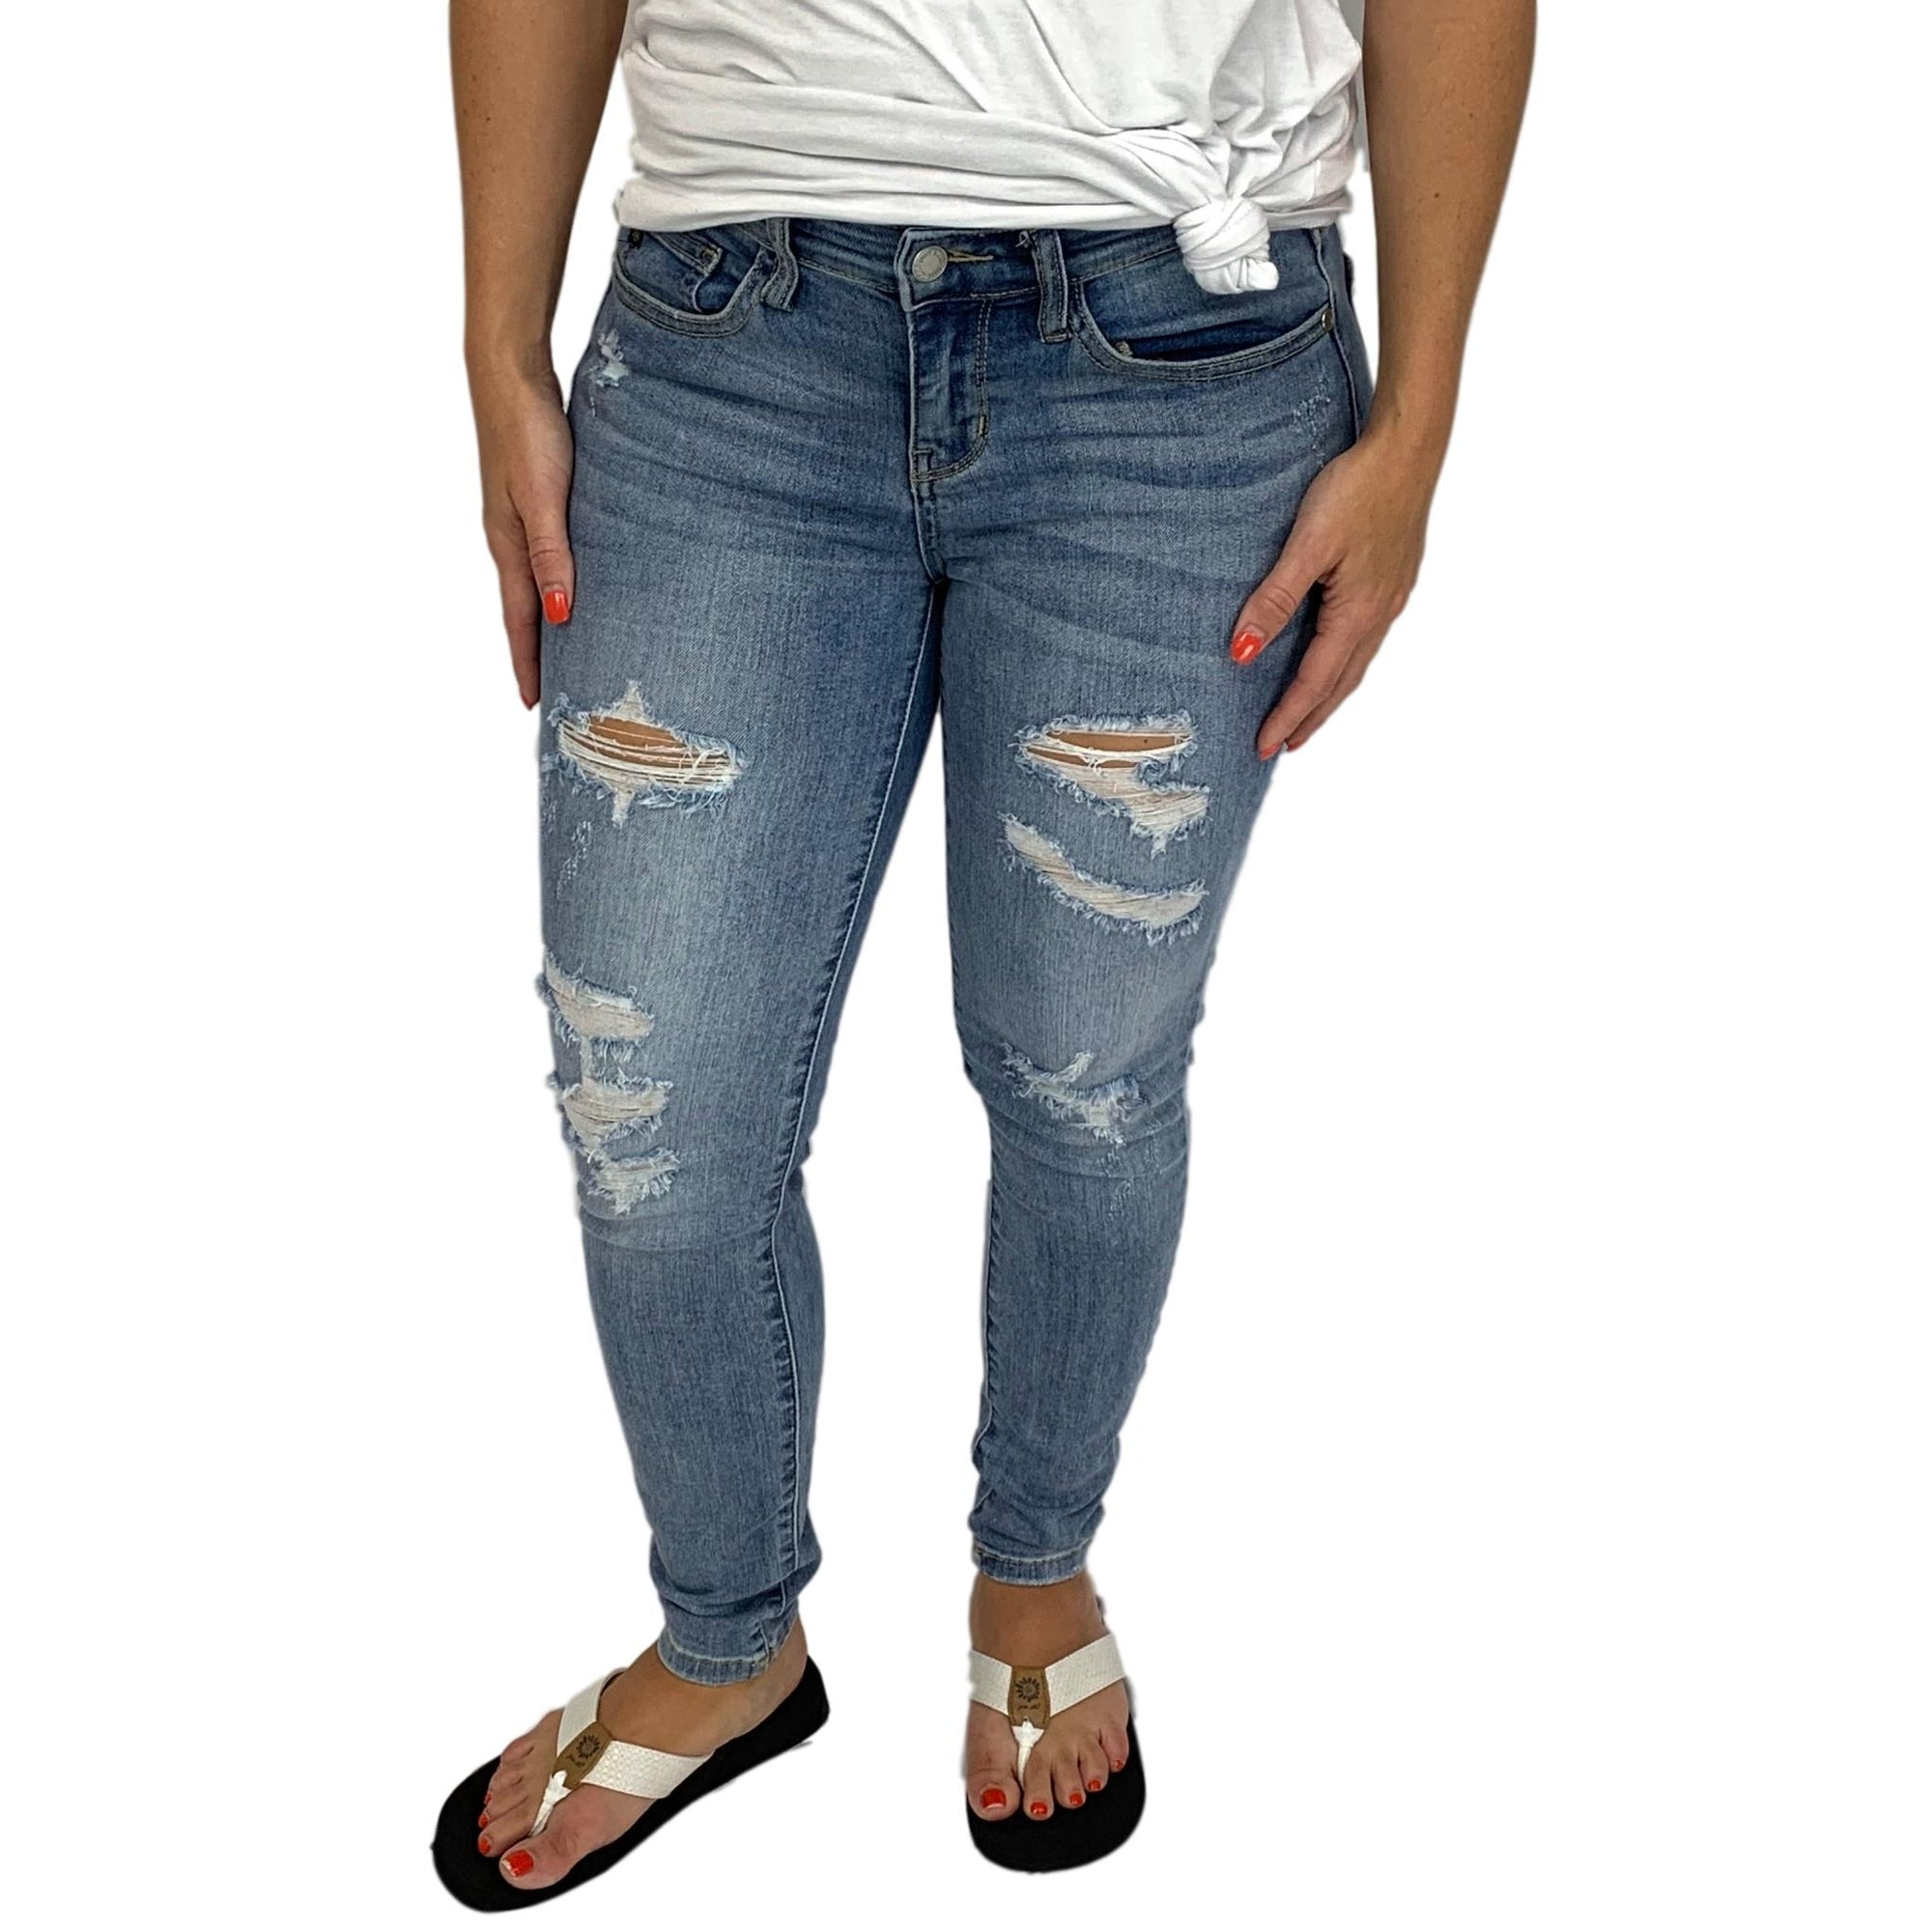 Judy Blue Light Distressed Jeans